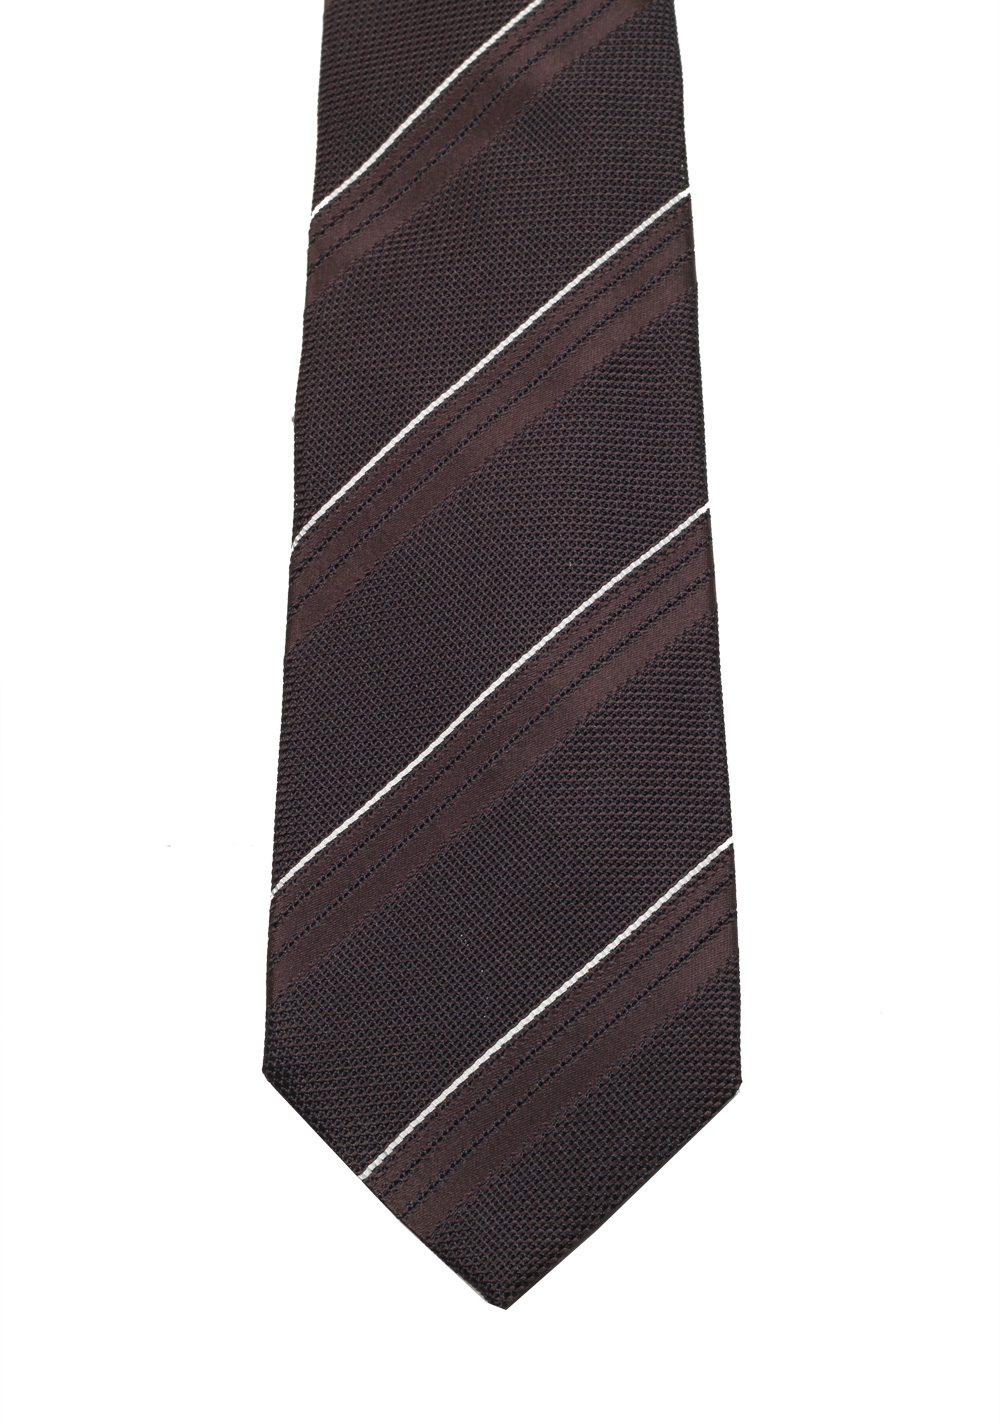 TOM FORD Striped Brown Tie In Silk | Costume Limité